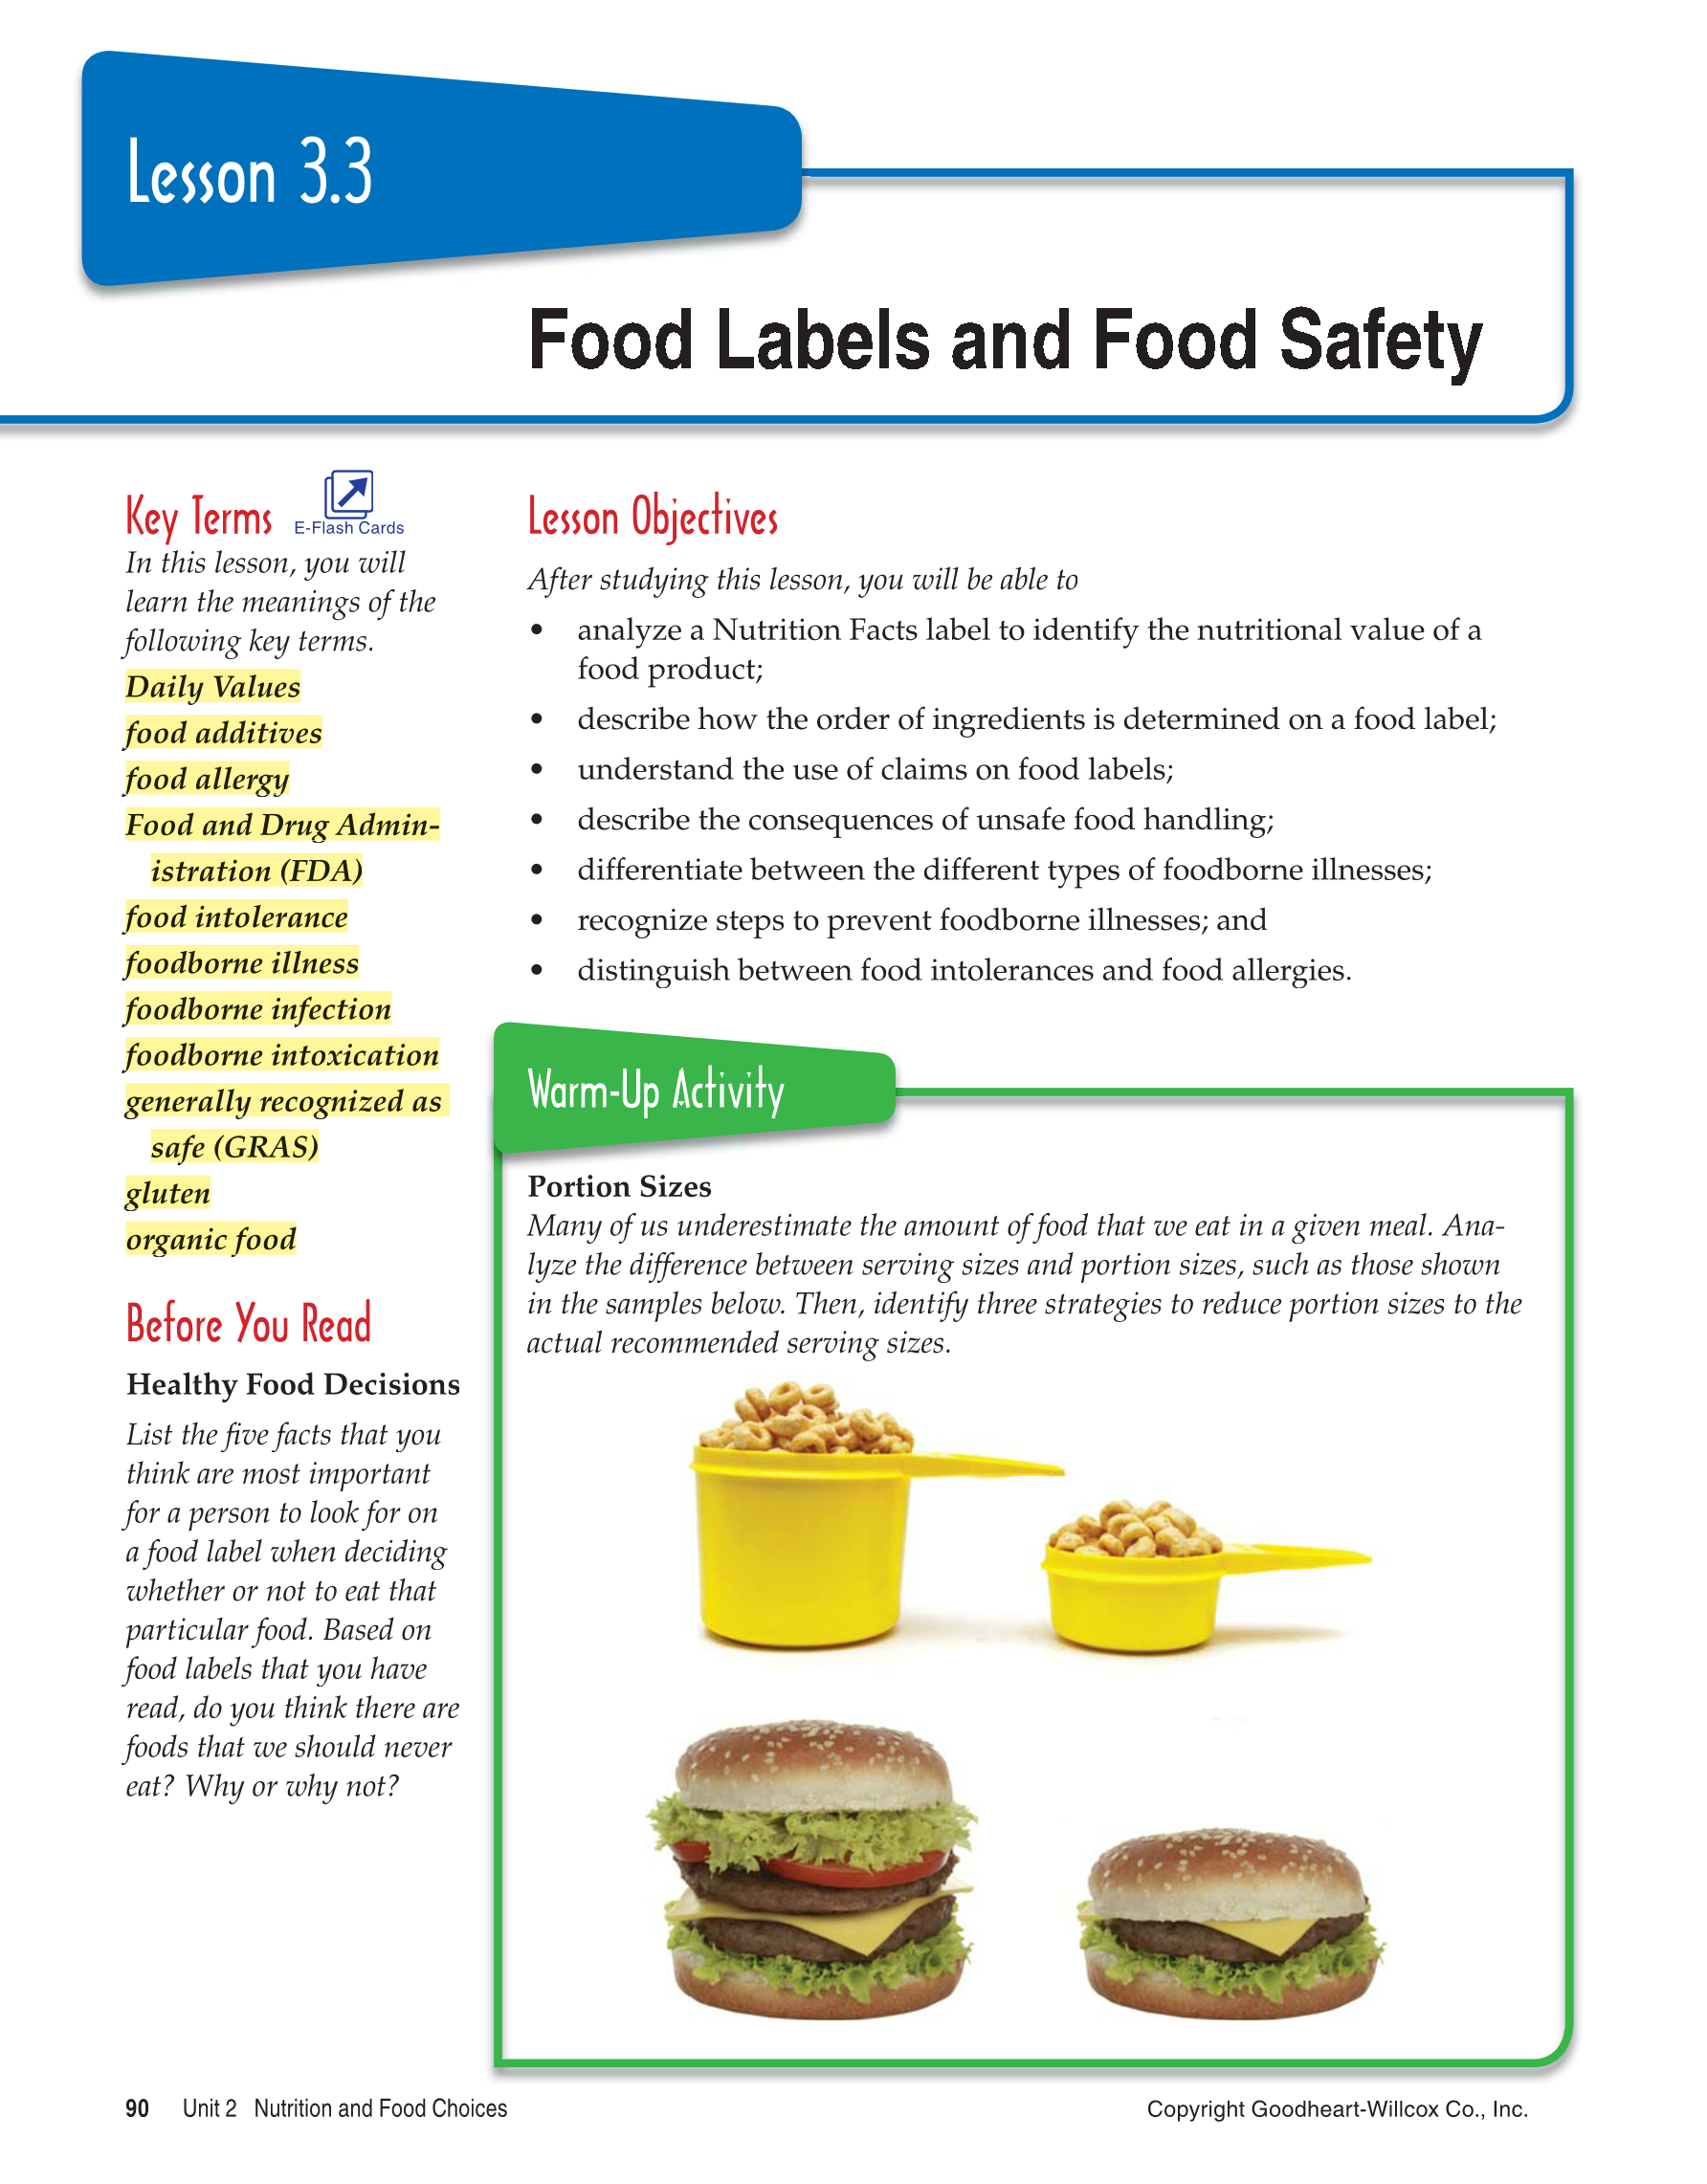 nutritional value of food products essay